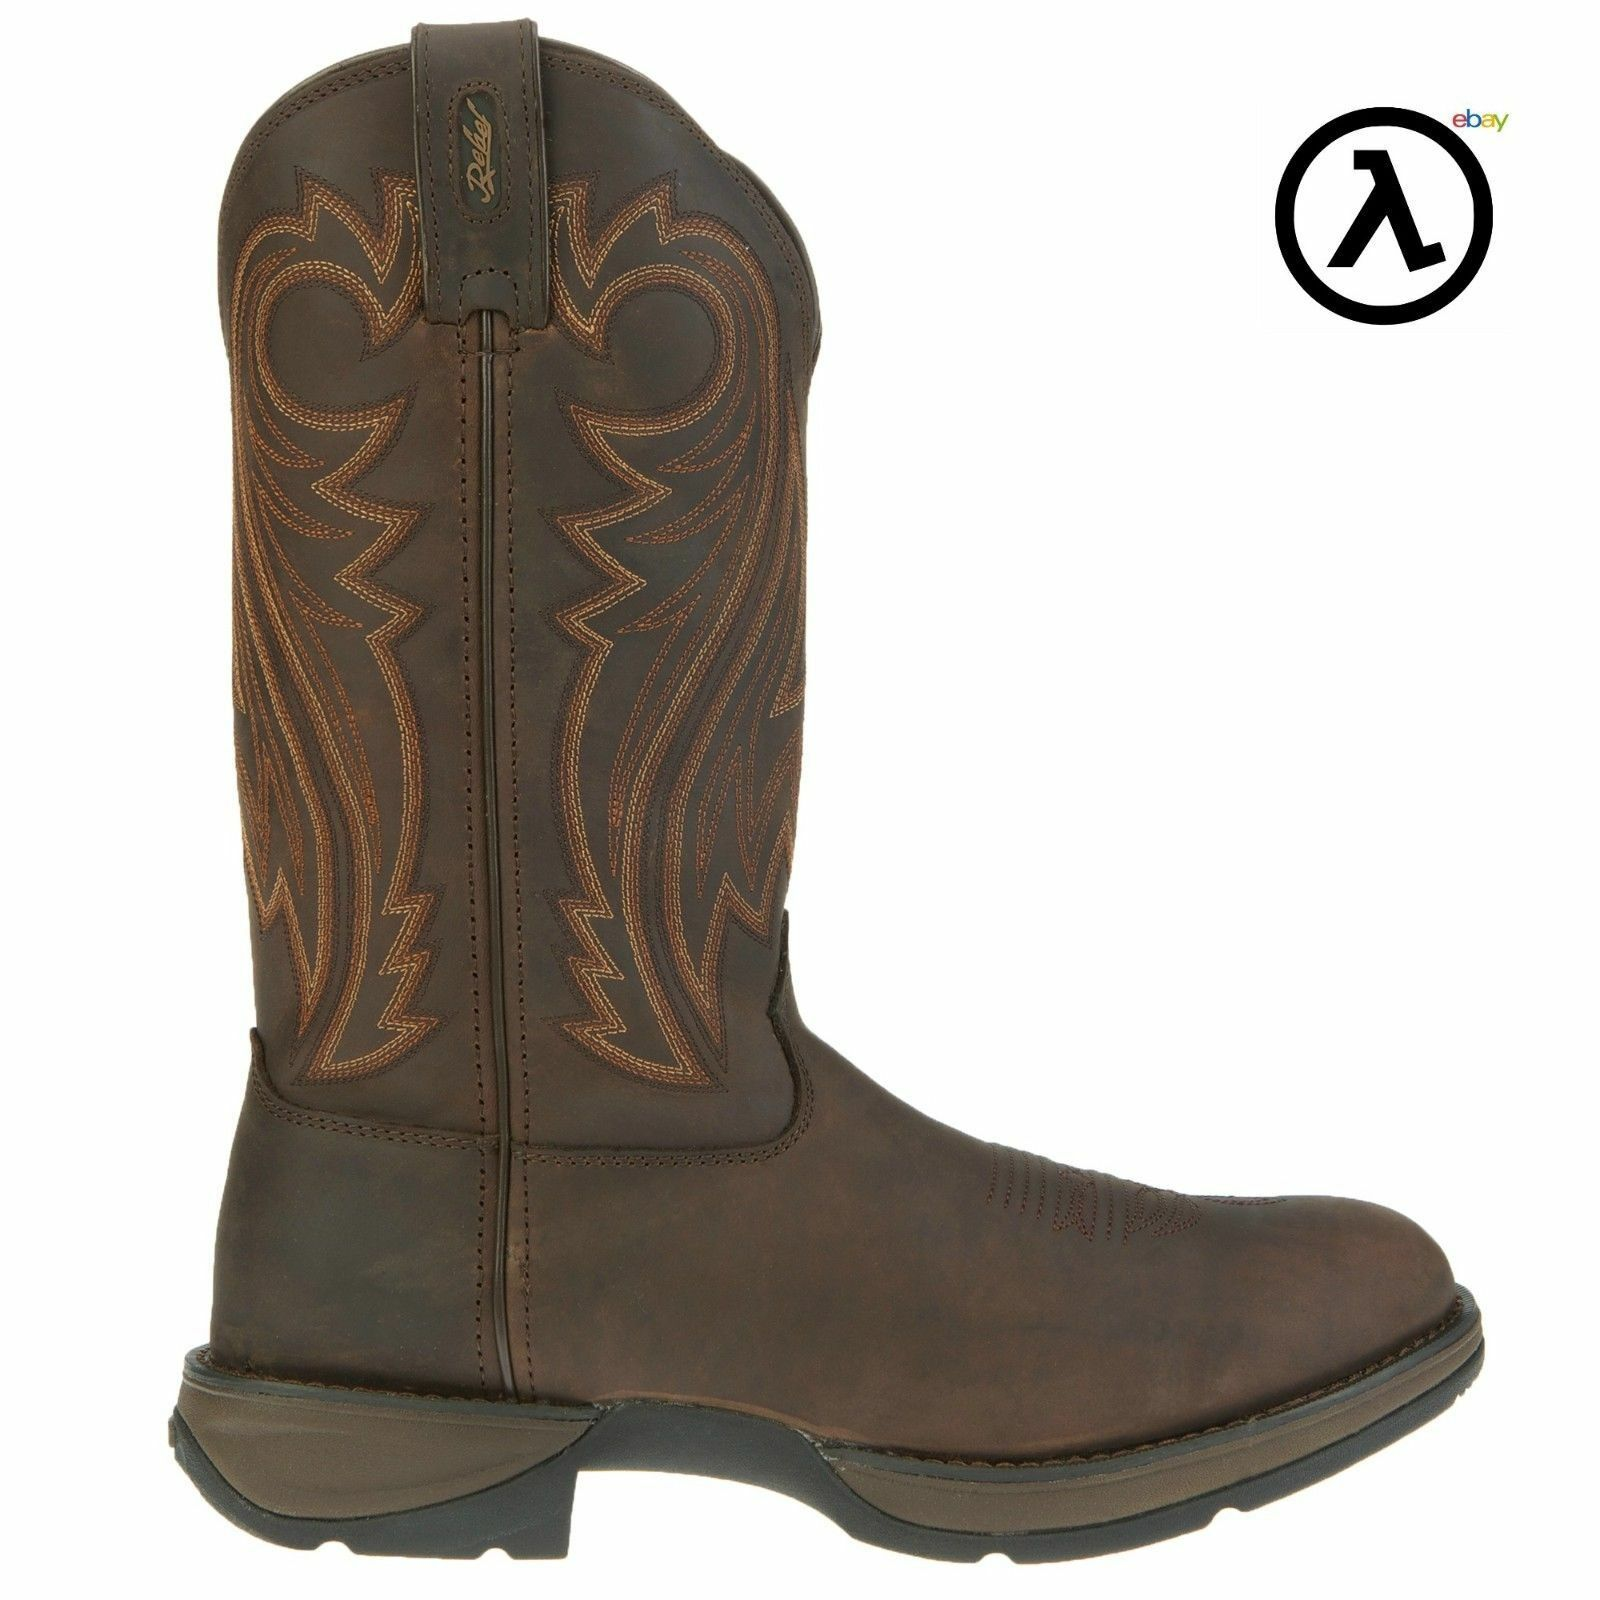 REBEL BY DURANGO CHOCOLATE PULL-ON WESTERN BOOTS DB5464 * ALL SIZES - NEW